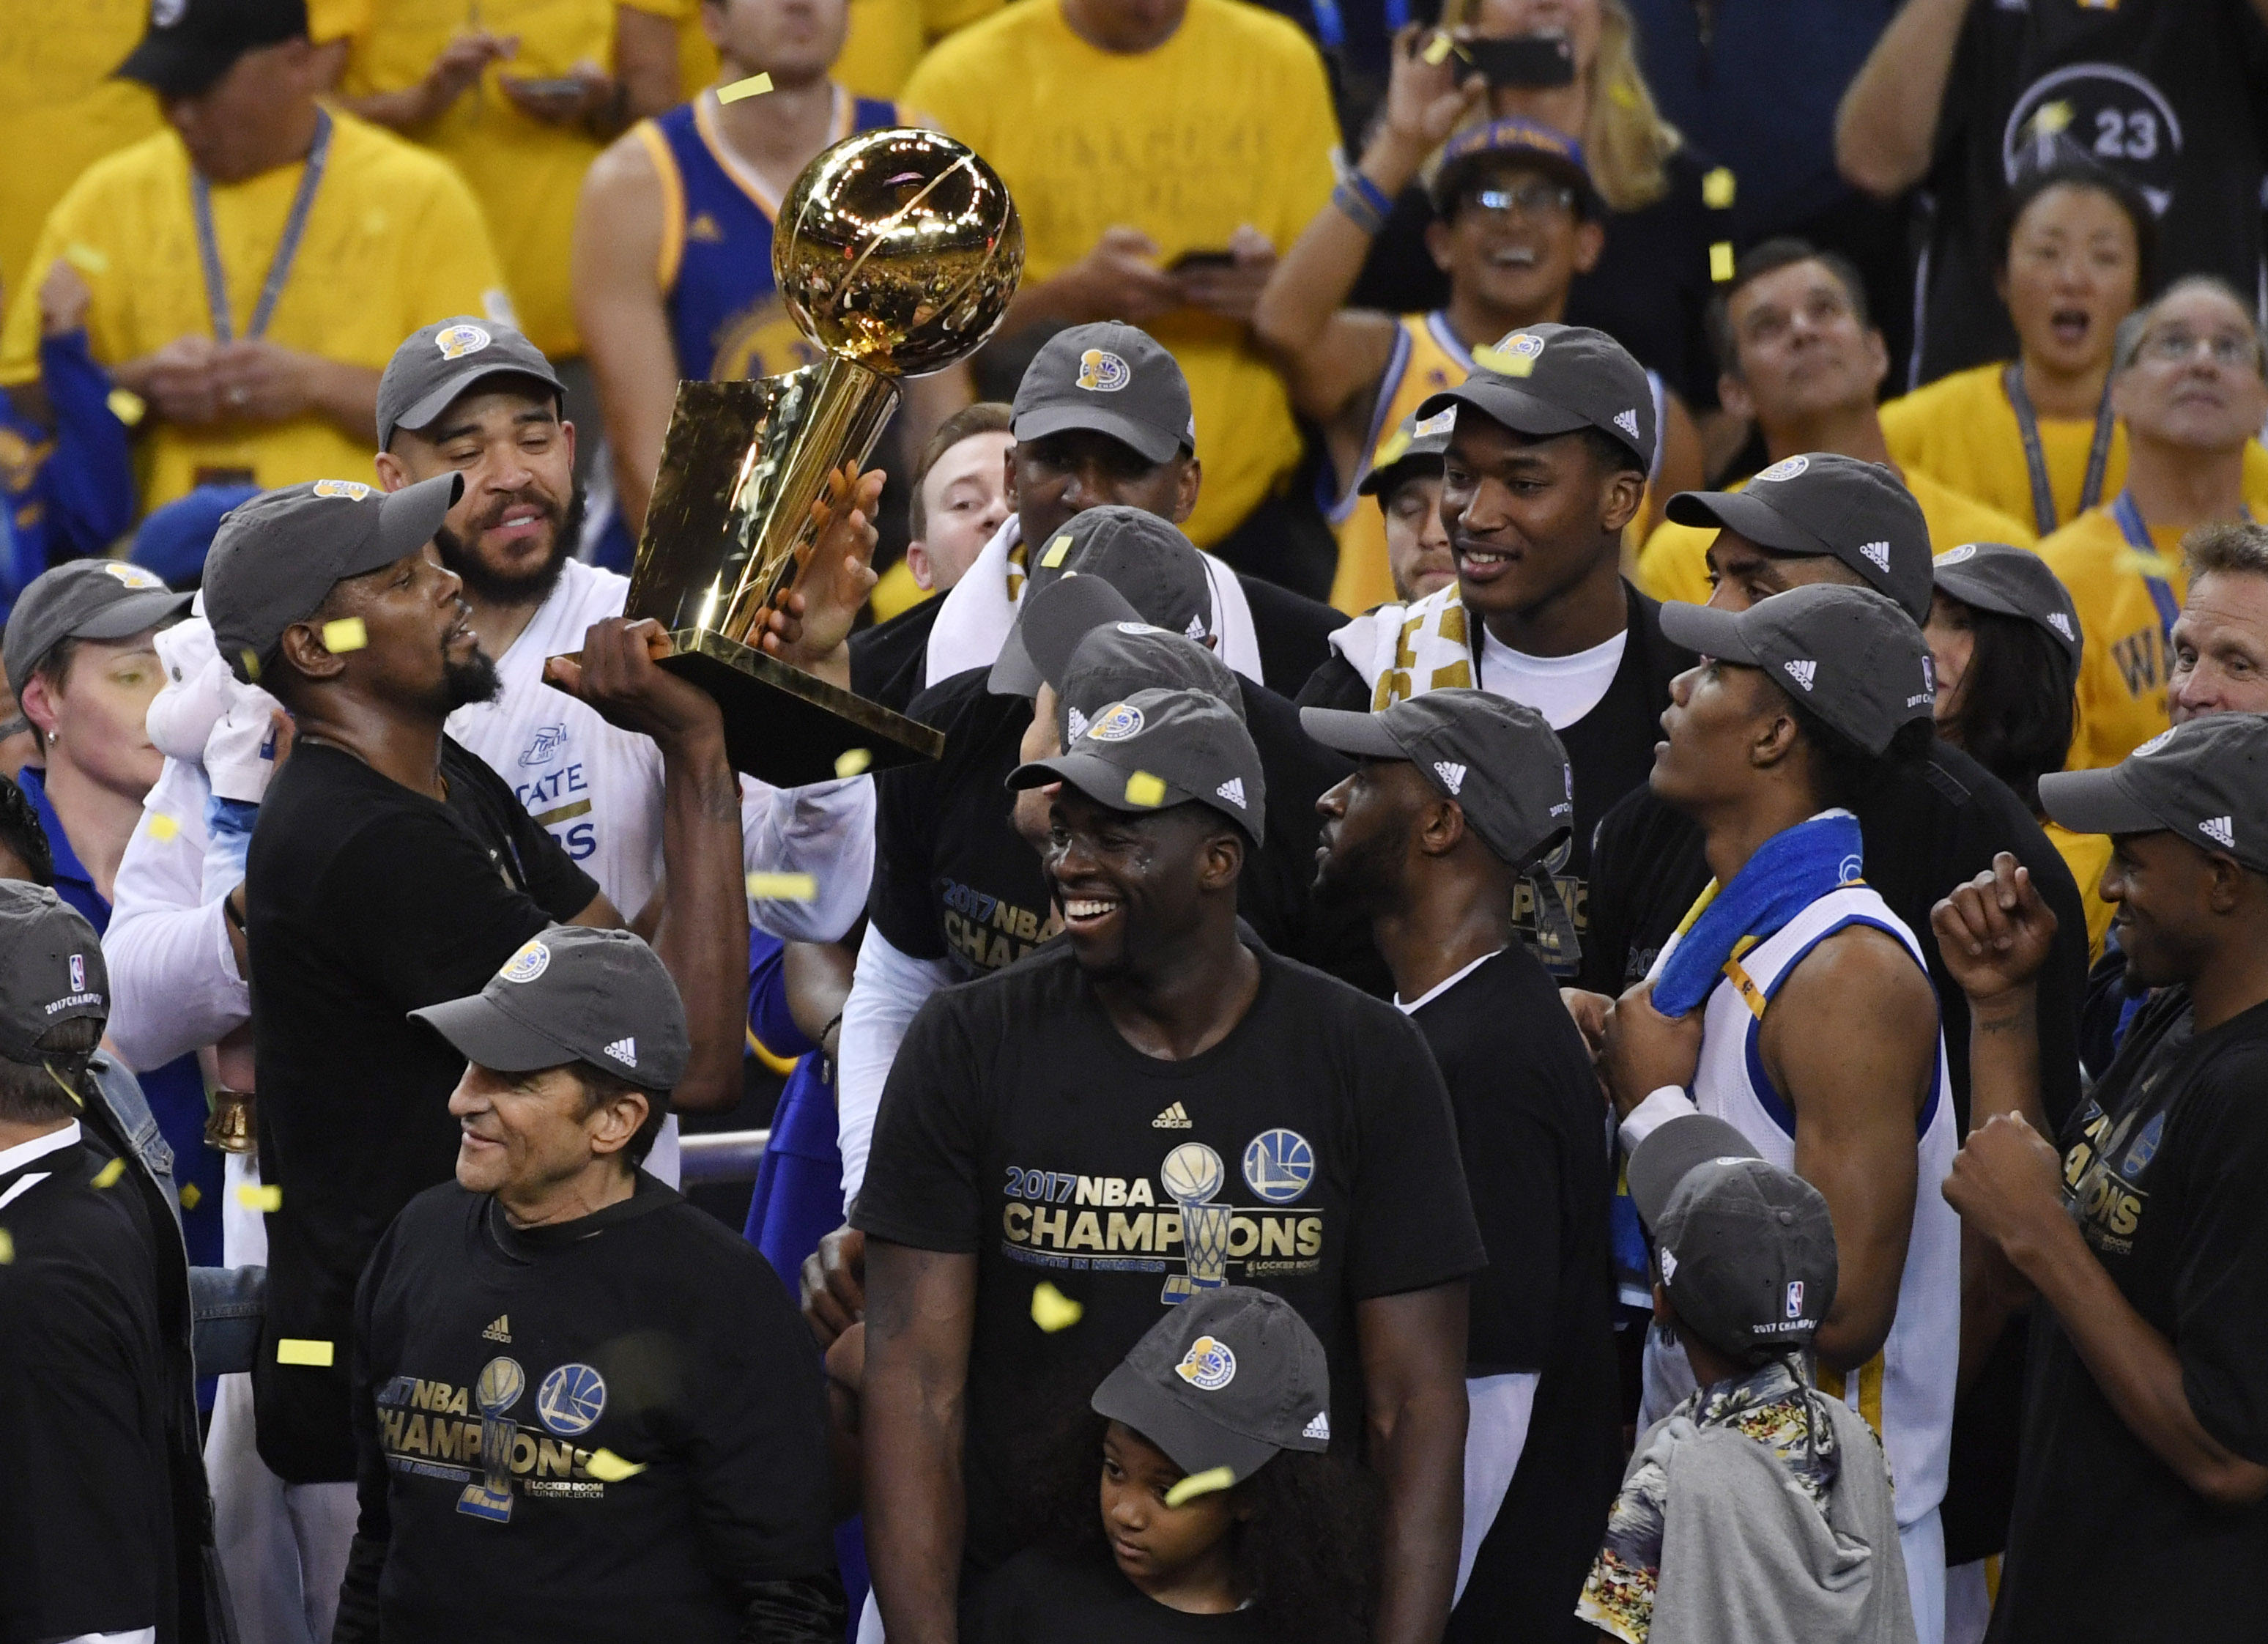 e5d2e575f706 Golden State Warriors beat Cleveland Cavaliers 129-120 to win NBA title